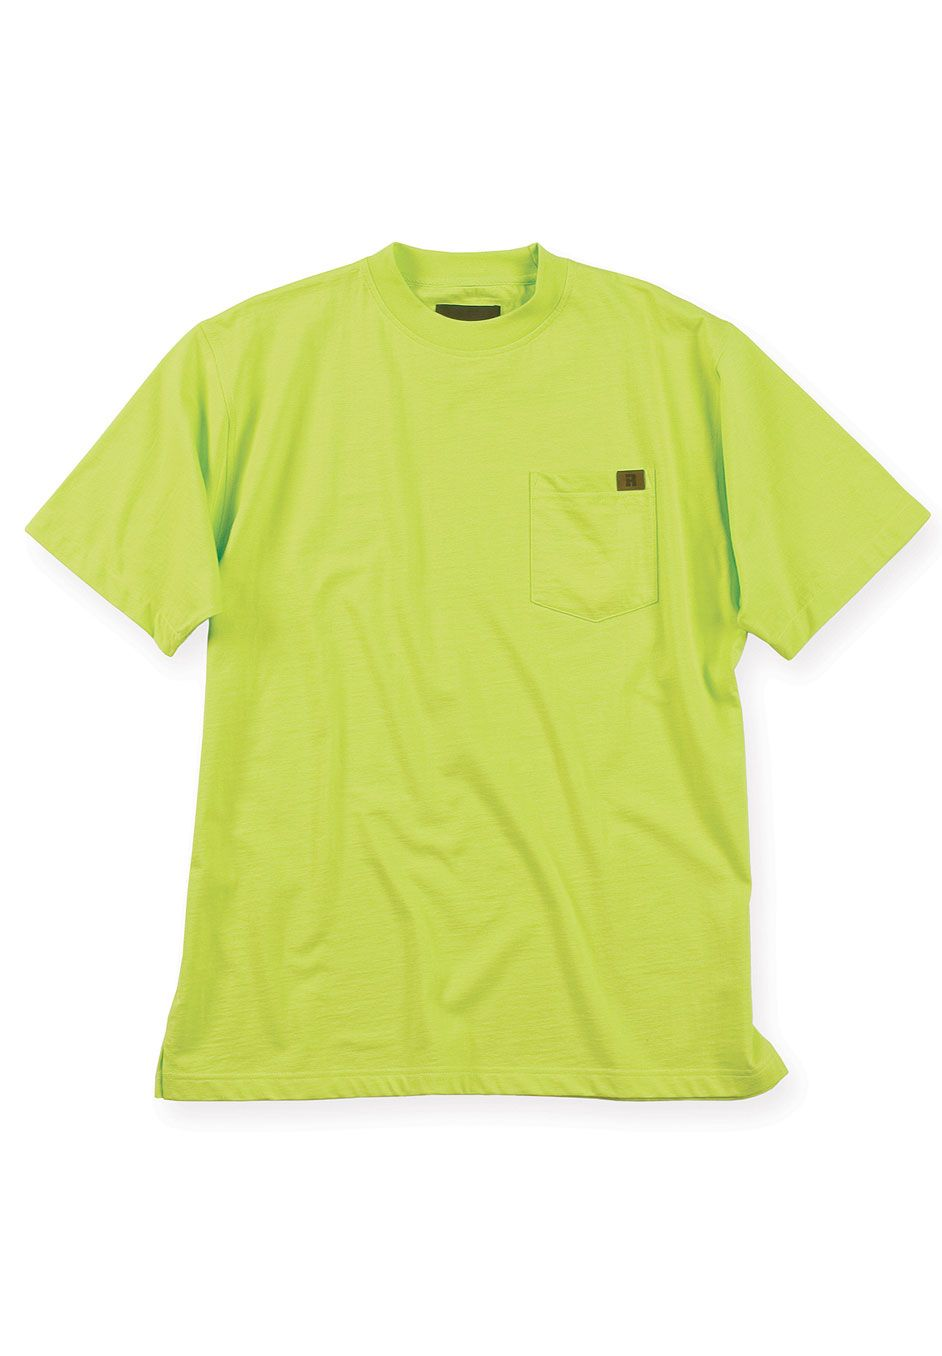 Crewneck Cotton Tee Shirt with Pocket by Wrangler®,